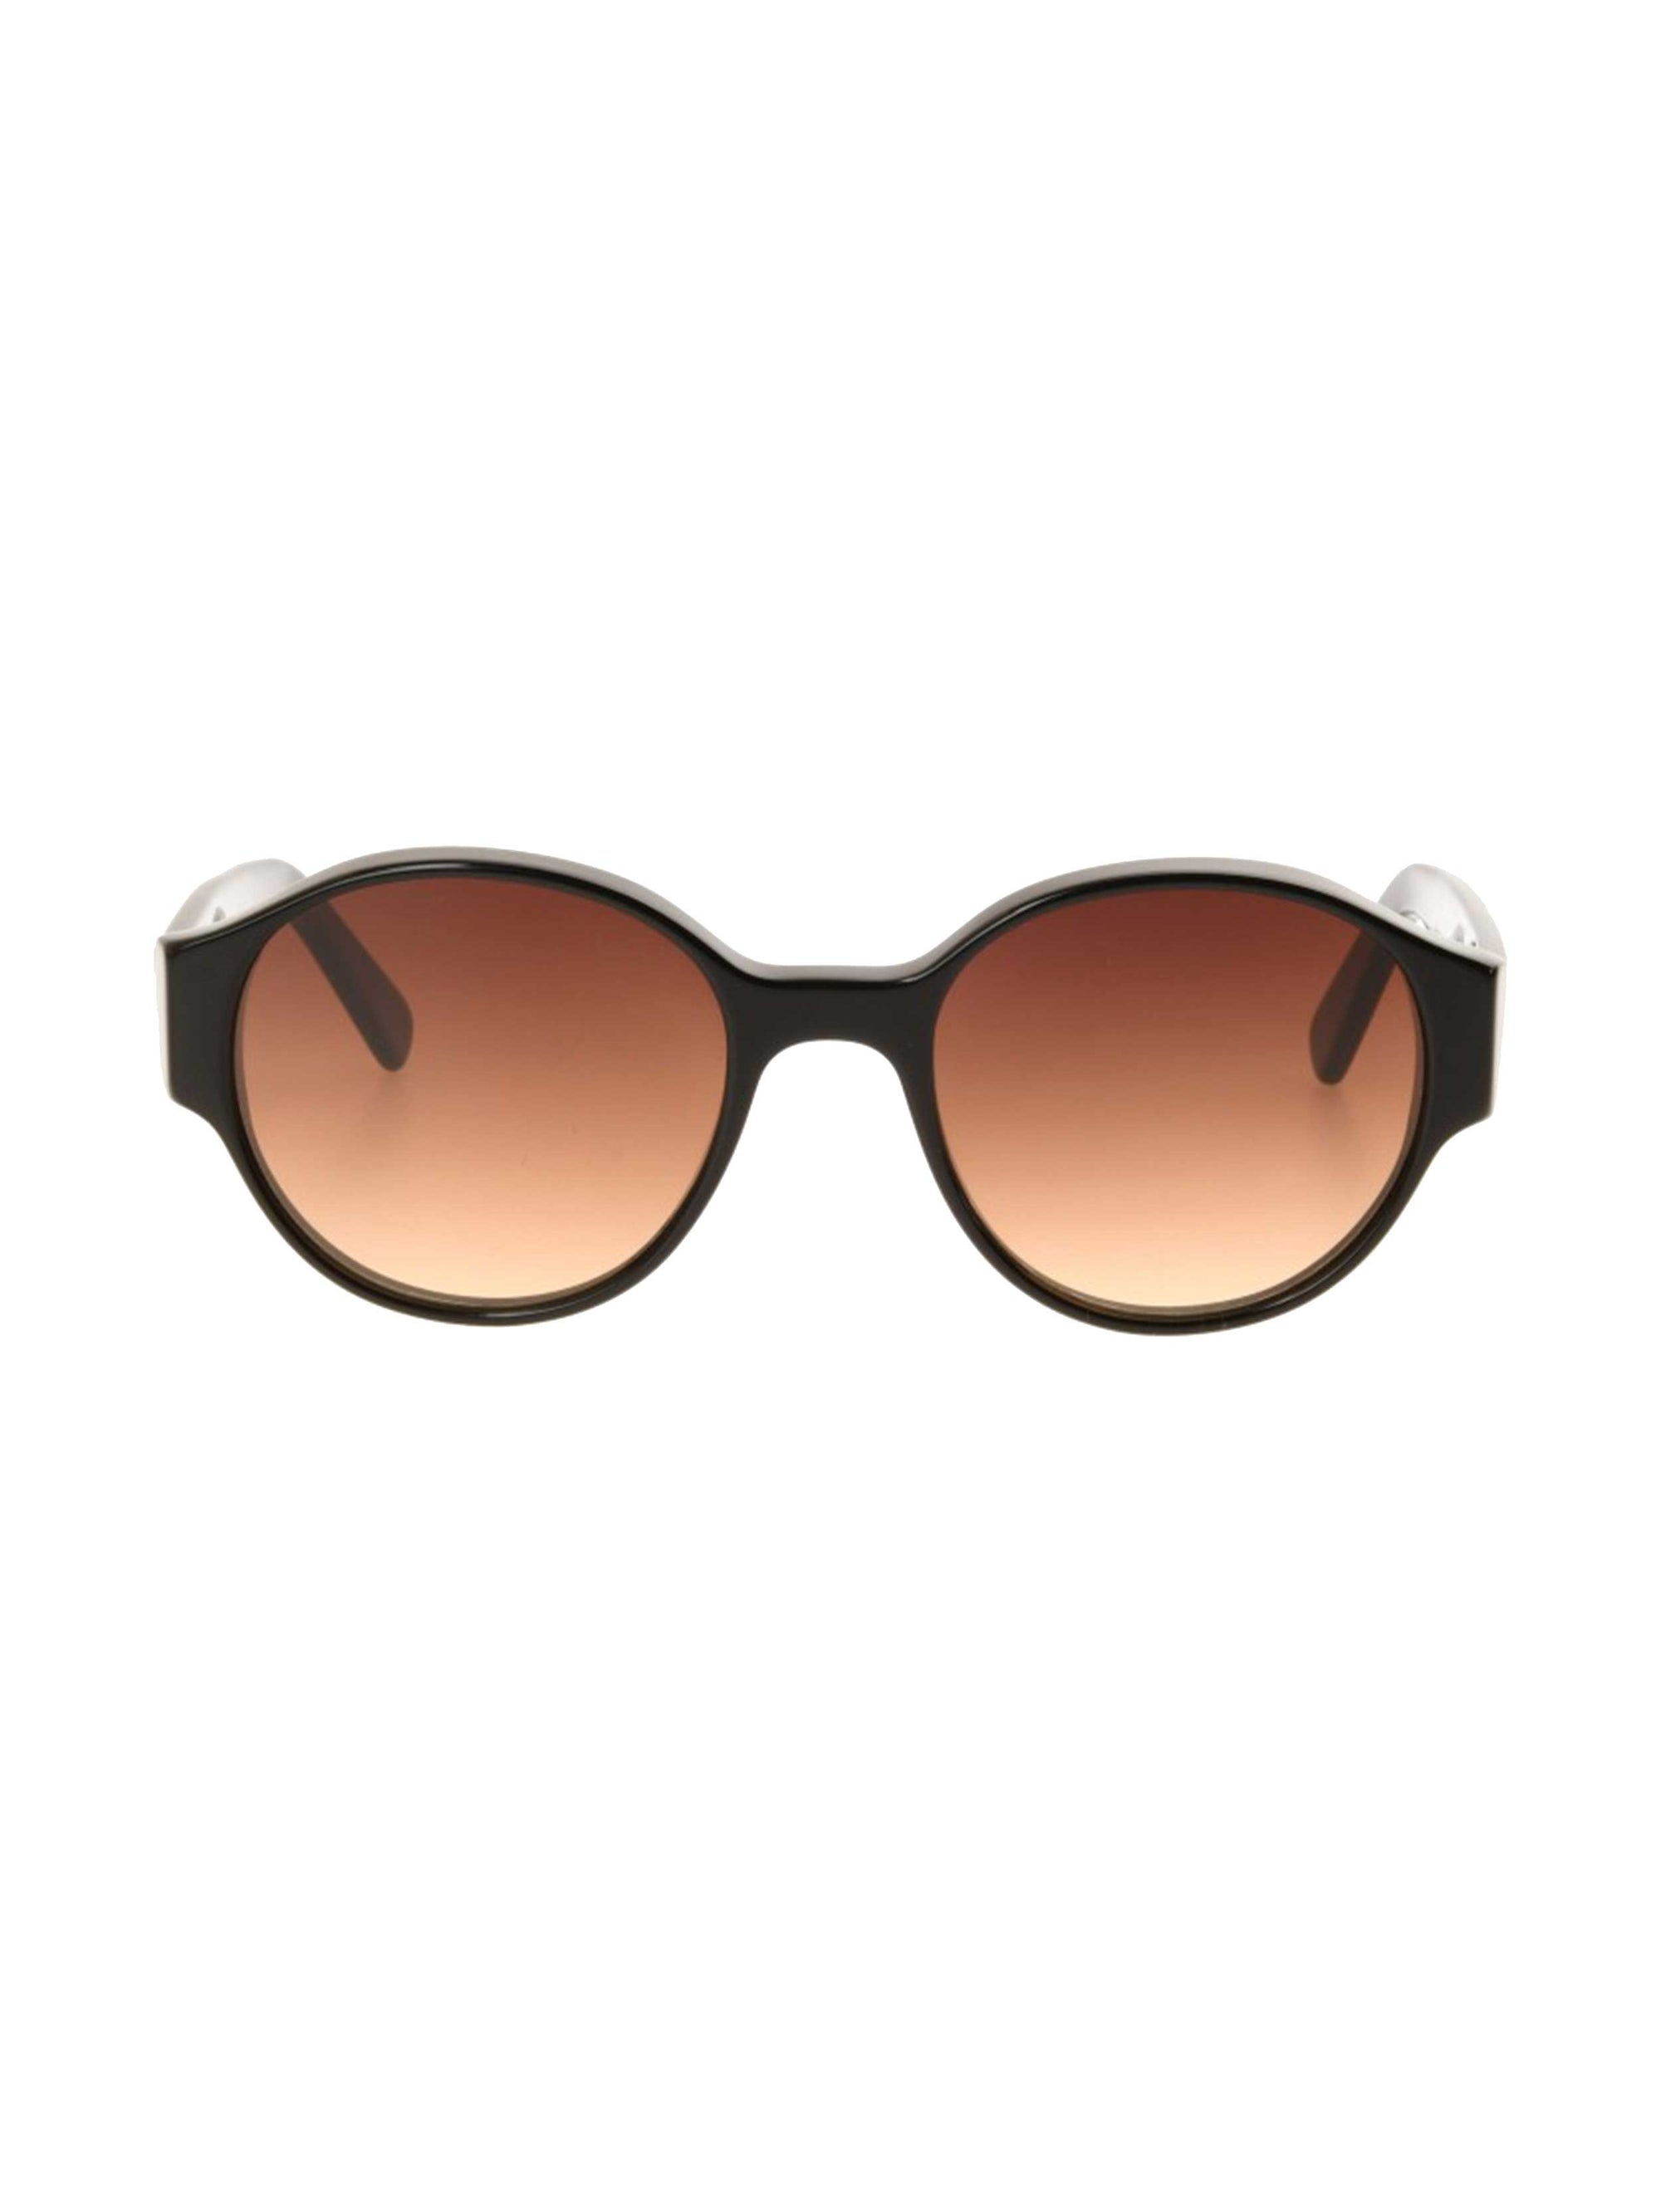 Lentes Carolina Lemke CL7642 02